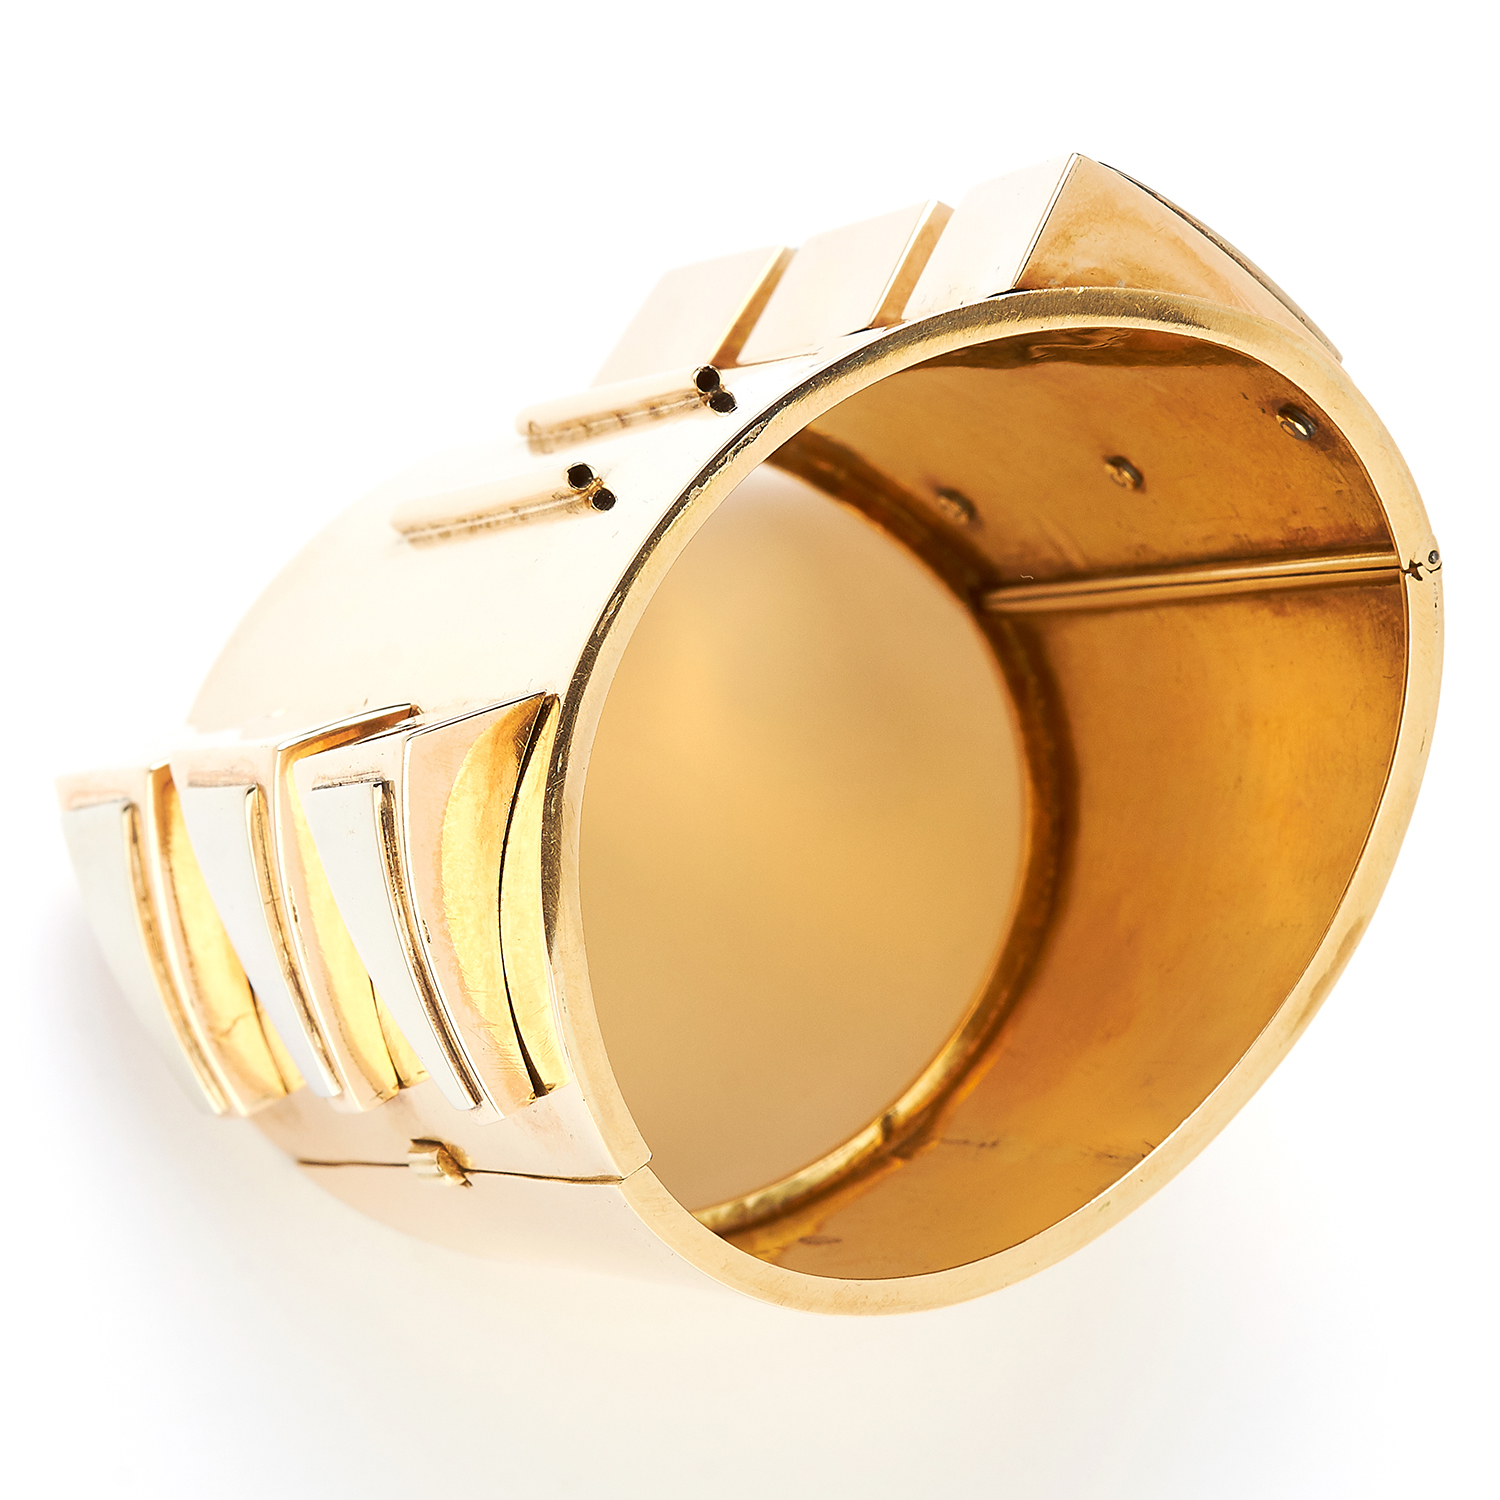 Los 51 - GOLD CUFF, FRENCH in high carat yellow gold, in abstract design, marked indistinctly, 191.5g.